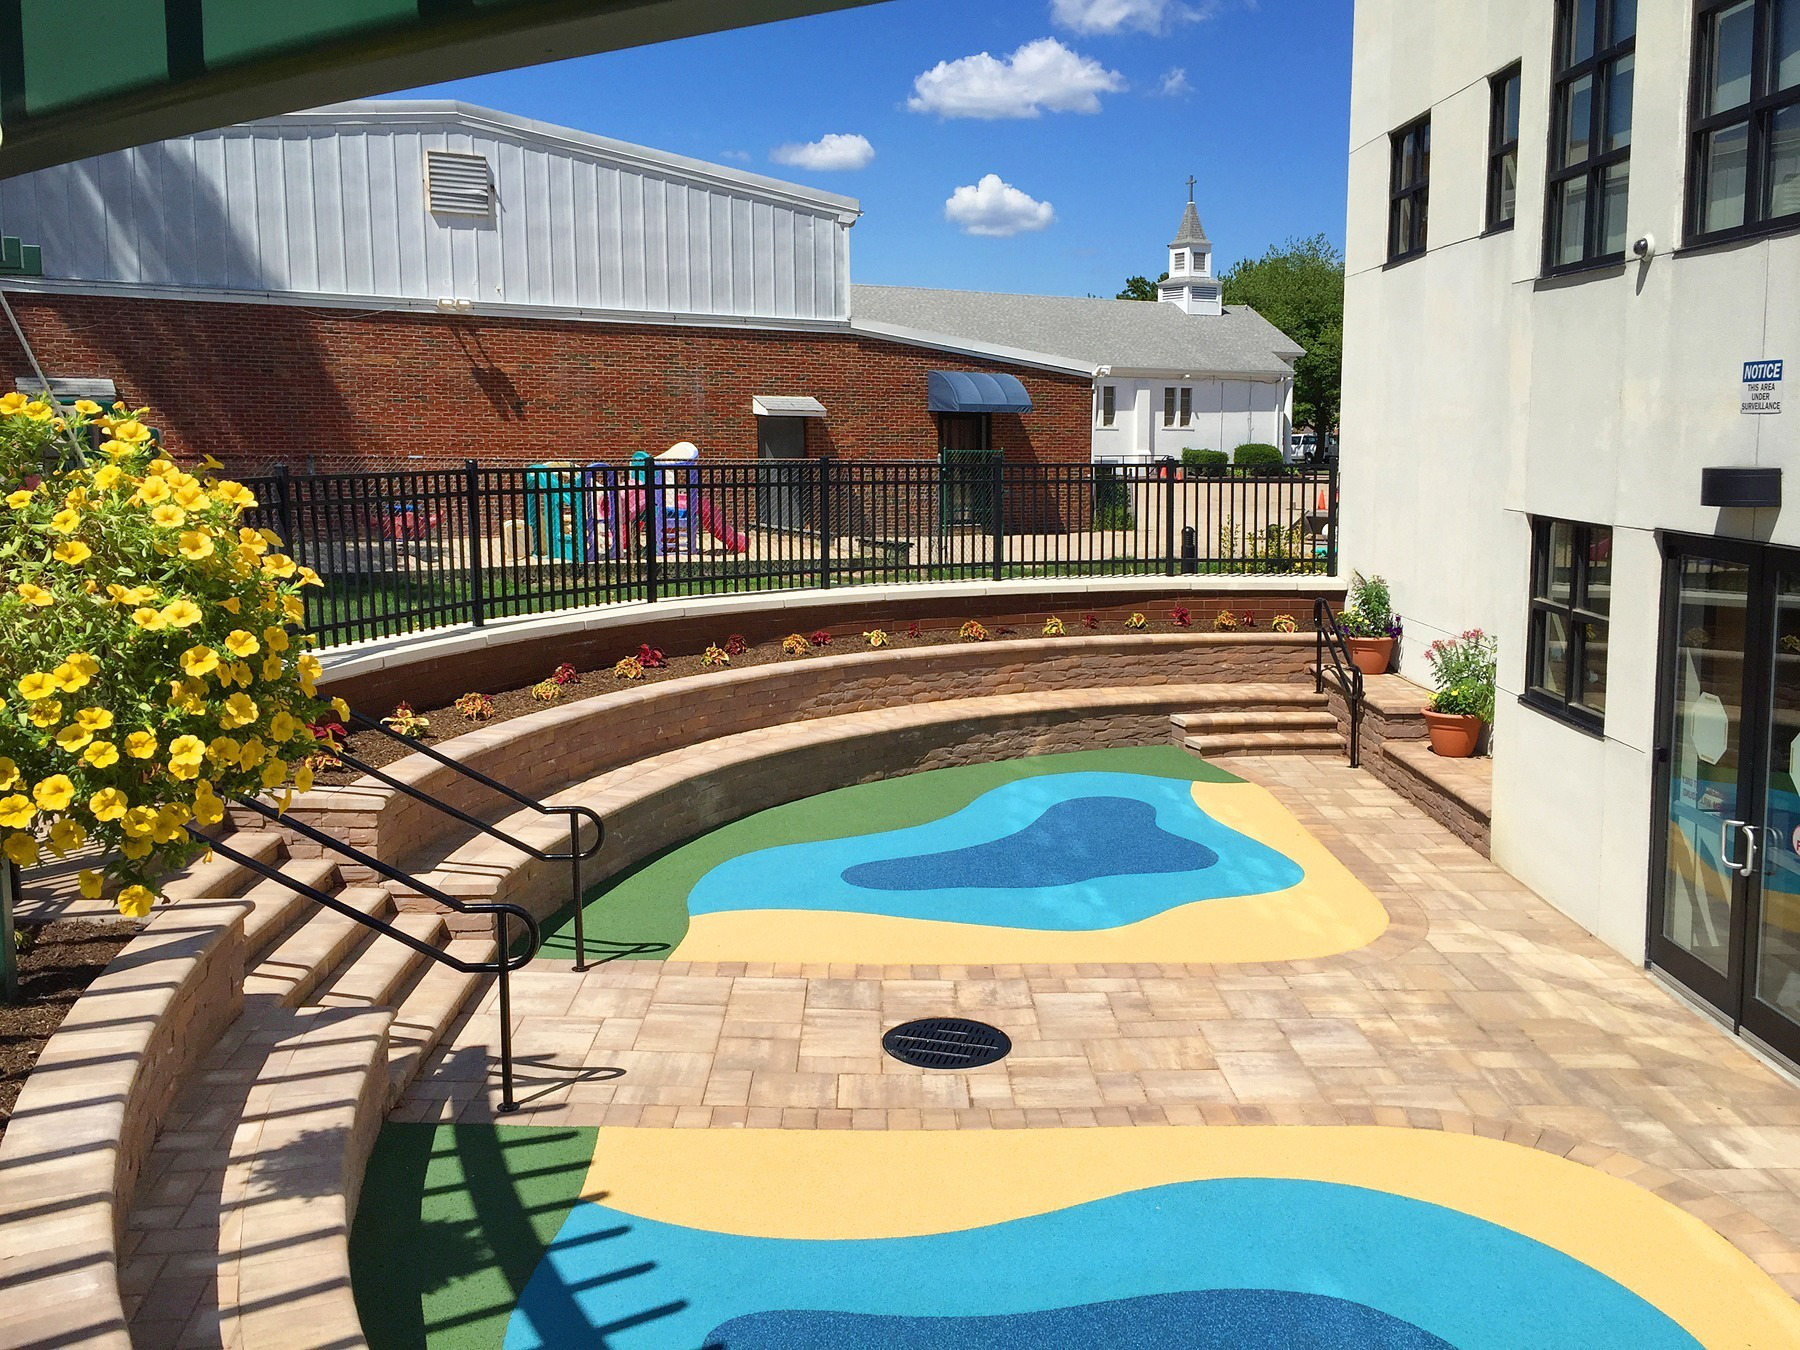 The 540 Square Foot, Semi Circular Safety Surface Play Area Is Constructed